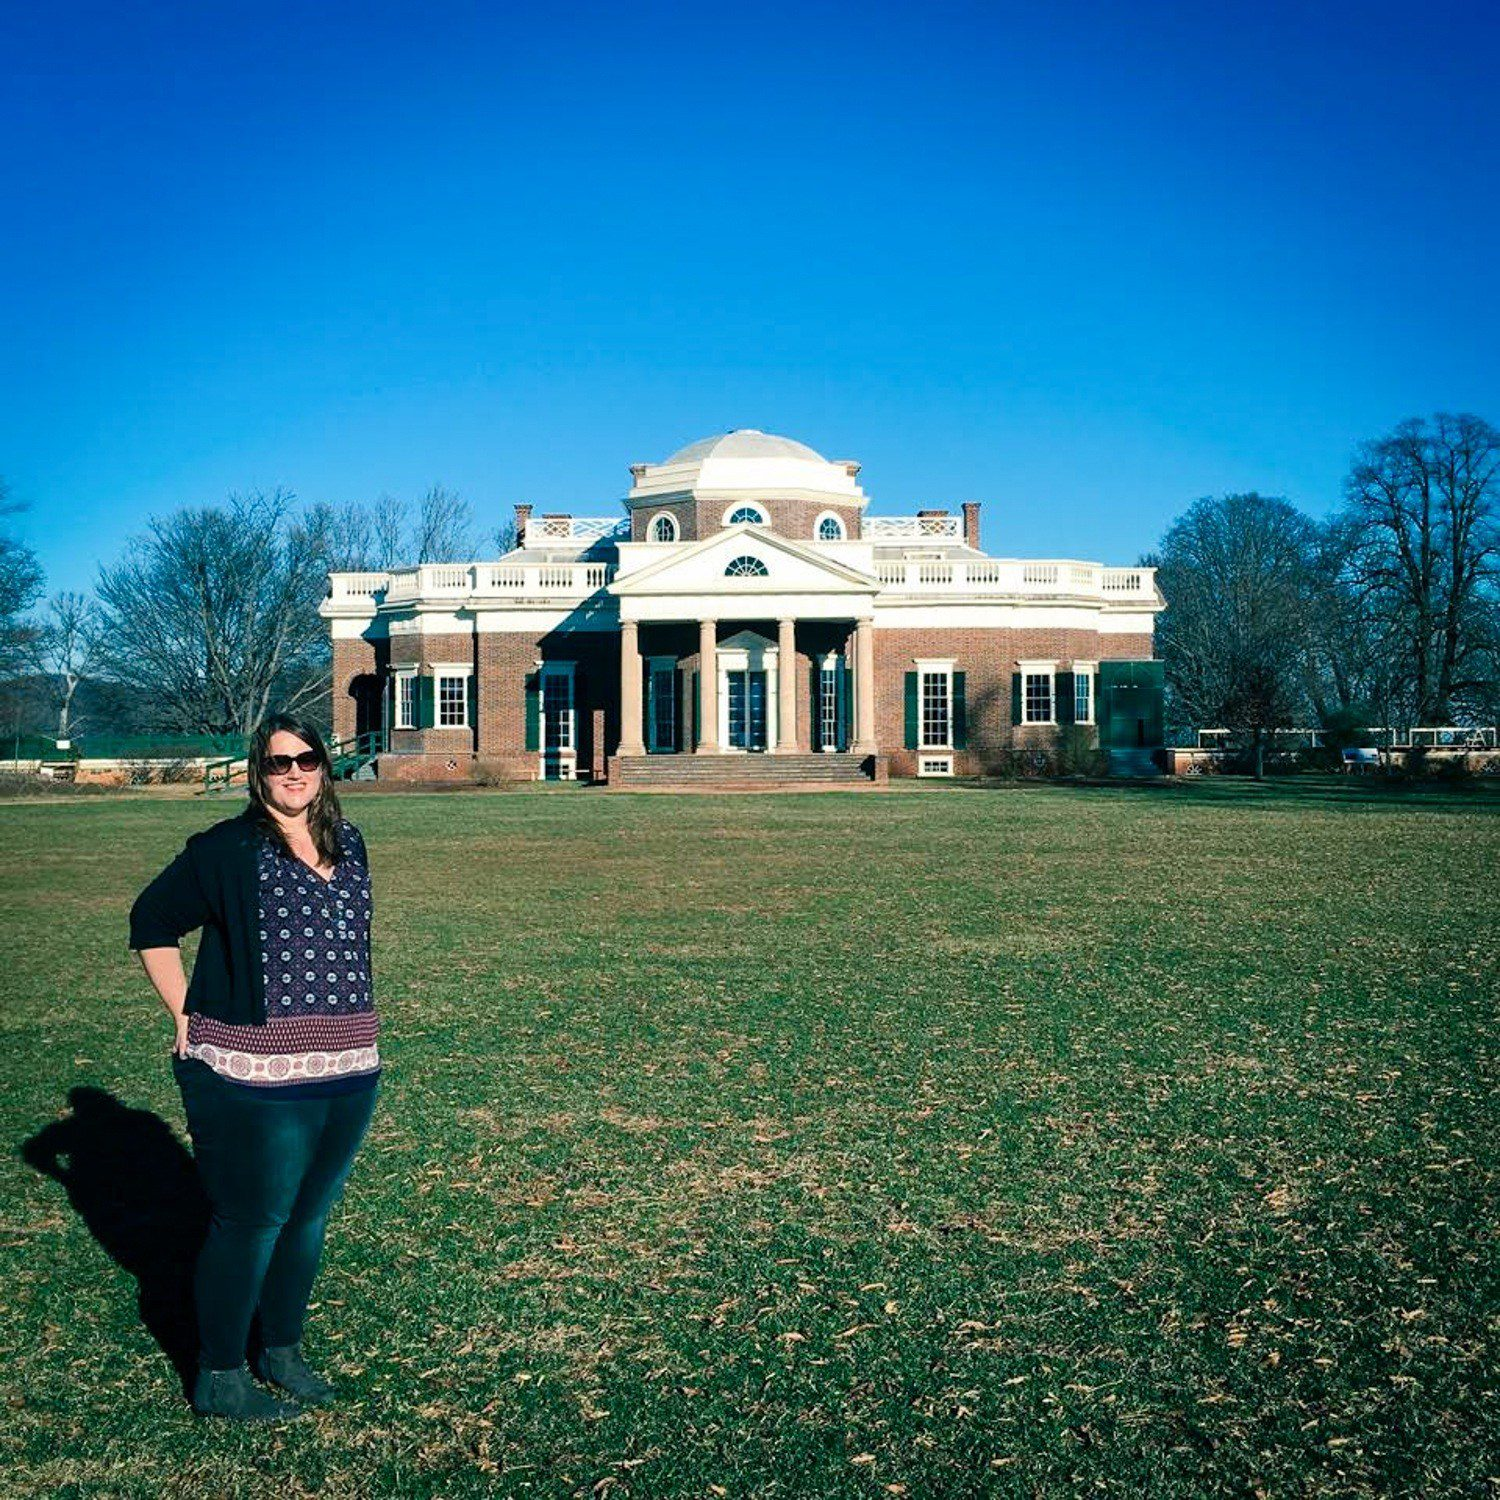 Stephanie (History Fangirl) at Thomas Jefferson's Monticello.